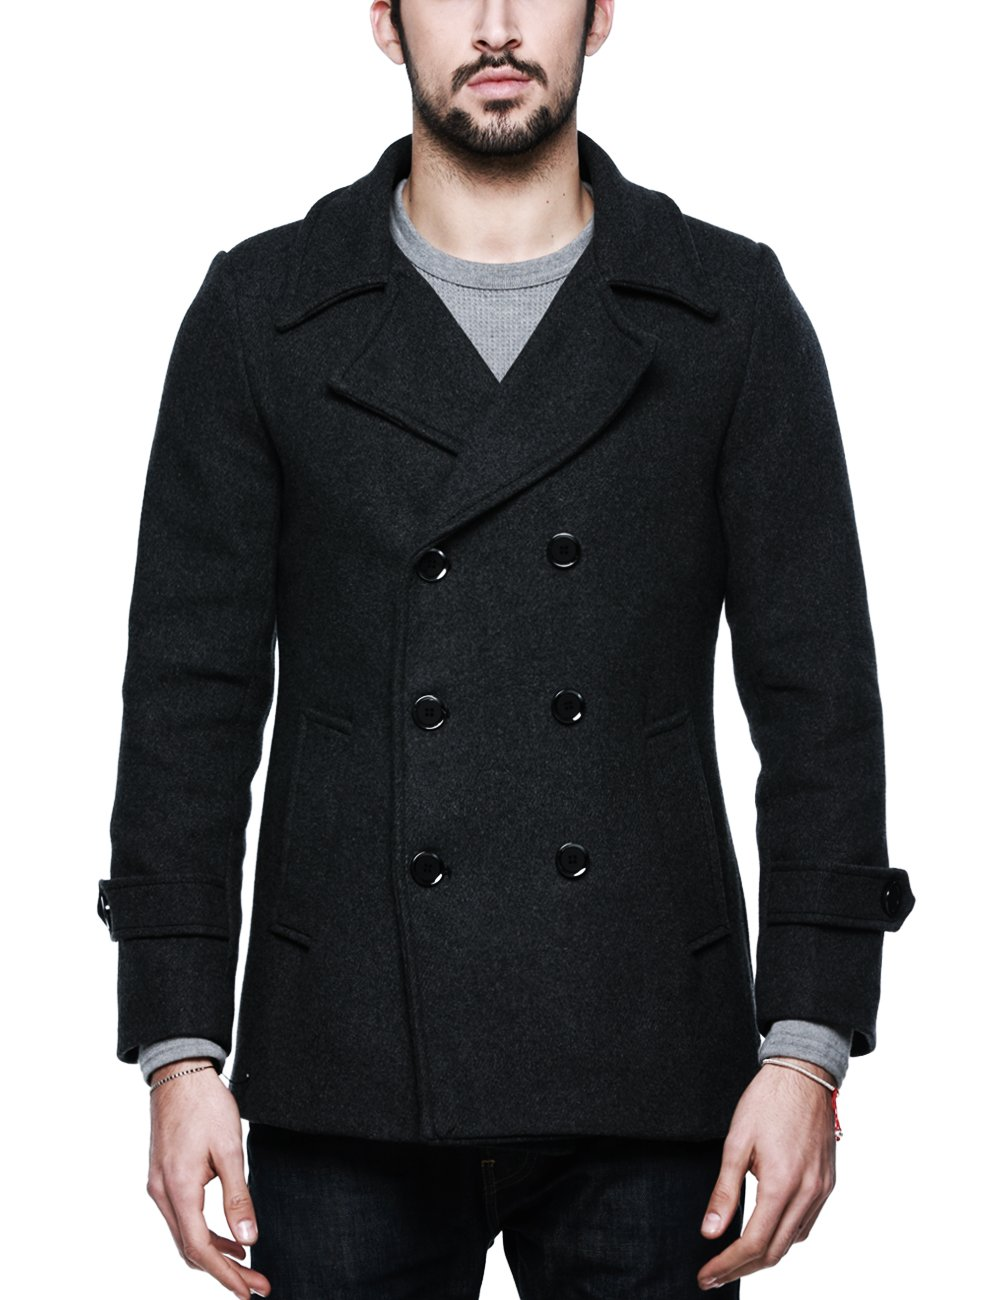 Match Mens Wool Classic Pea Coat Winter Coat (Small, 010-Dark Gray) by Match